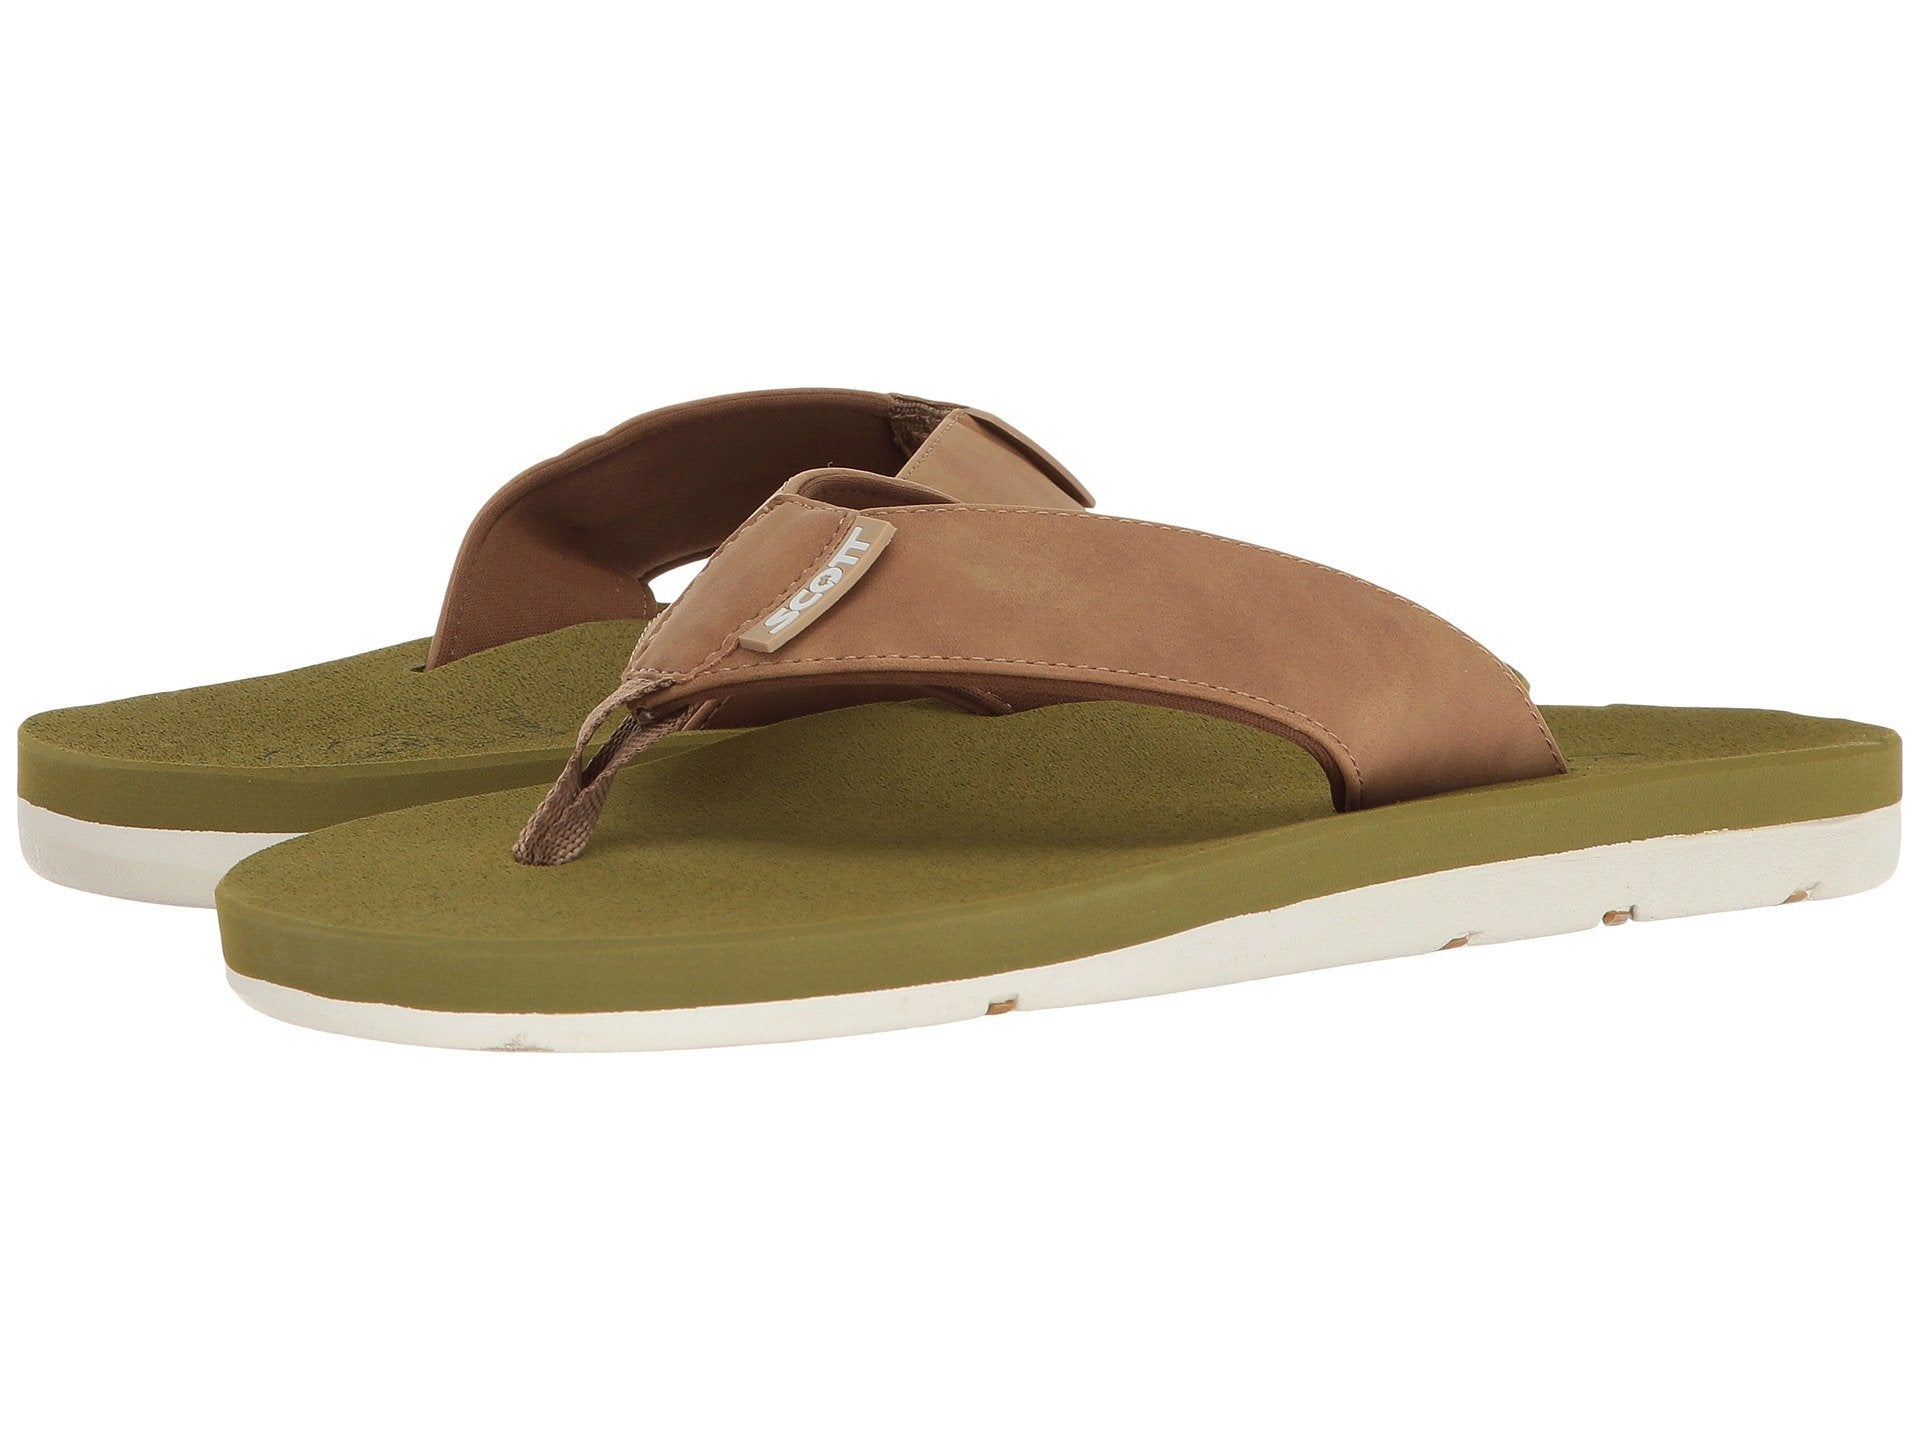 Tan Scott Hawaii Kapena Flip Flops- AlohaShoes.com